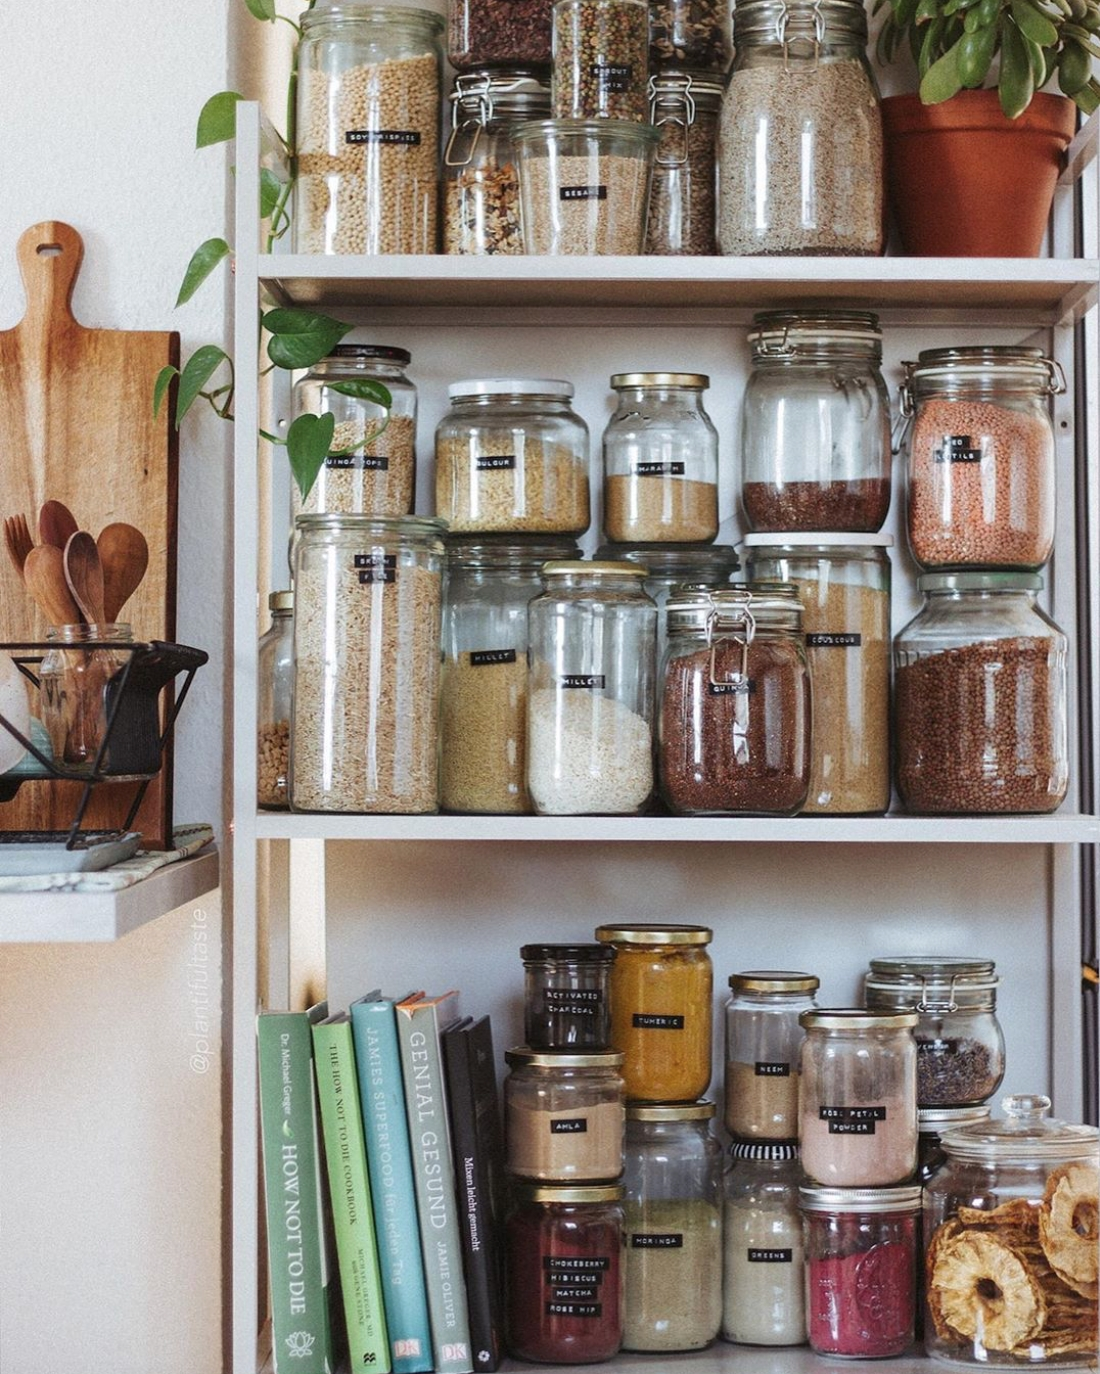 Hab ihr auch ein vorratsregal  pantry pantryorganisation kitcheninspo kitchenorganisation kueche  b540593a 3459 4214 8b94 0a7b807fd756